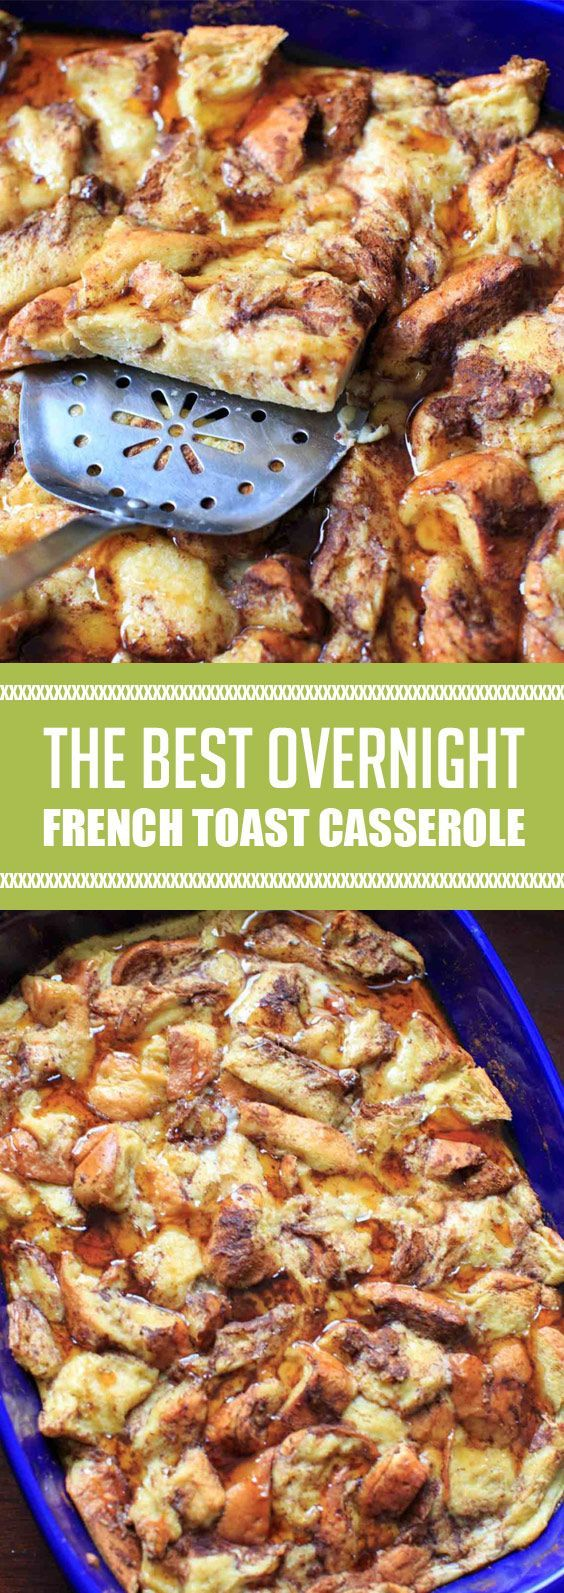 67 reviews The Best Overnight French Toast Casserole  Overnigh